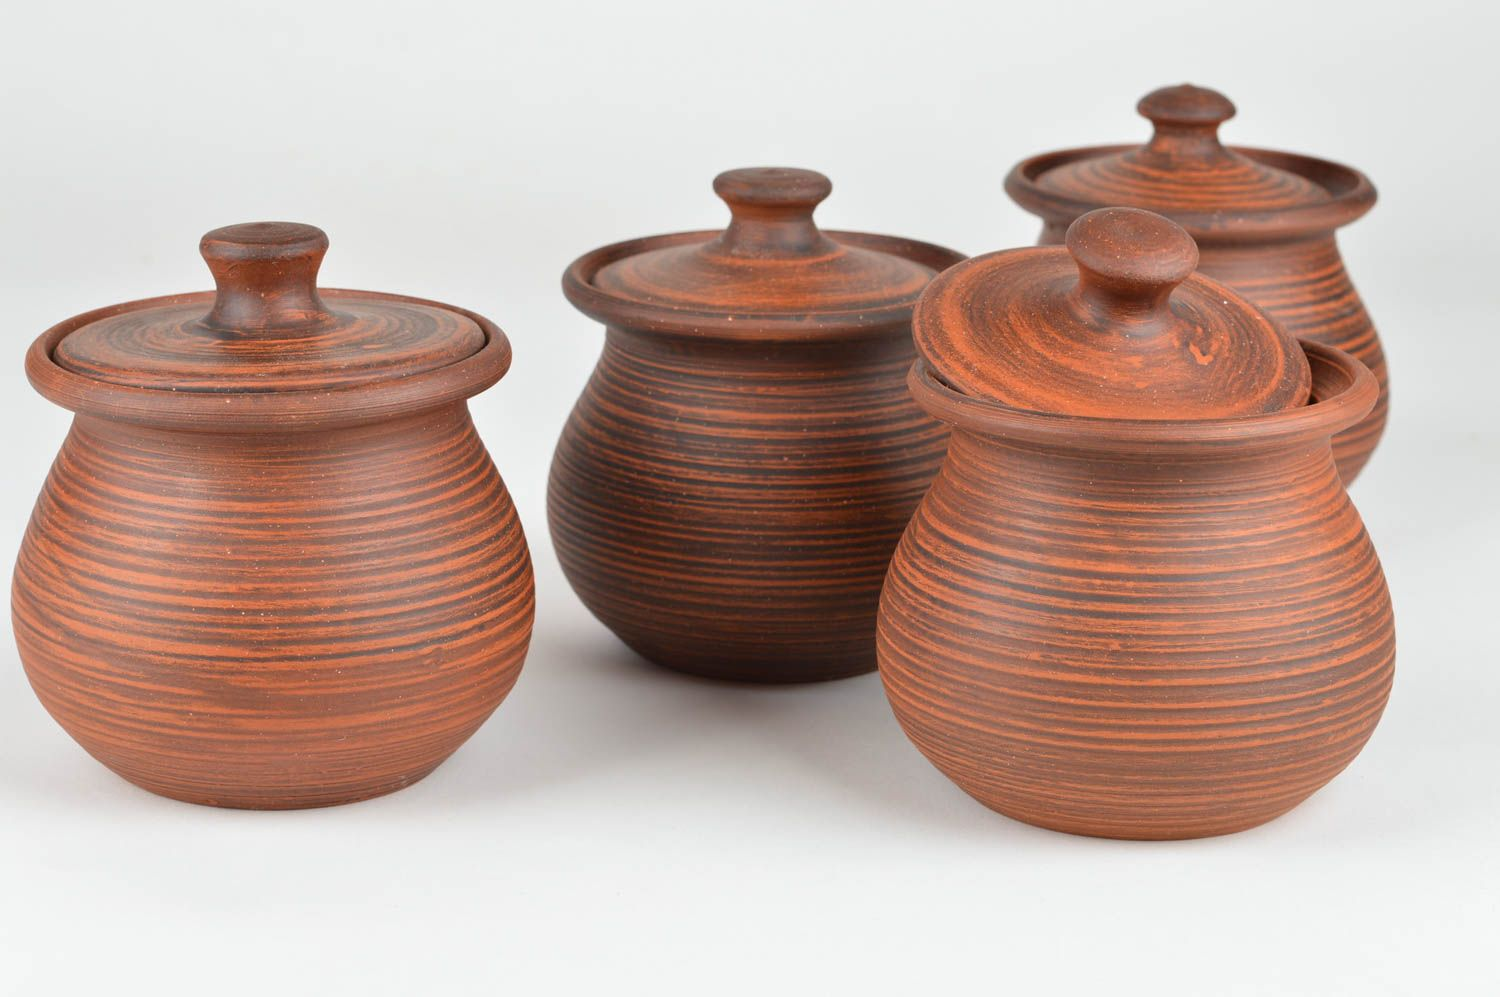 dinnerware sets Set of handmade ceramic pots with lids for baking 4 items for 400 ml - MADEheart.com